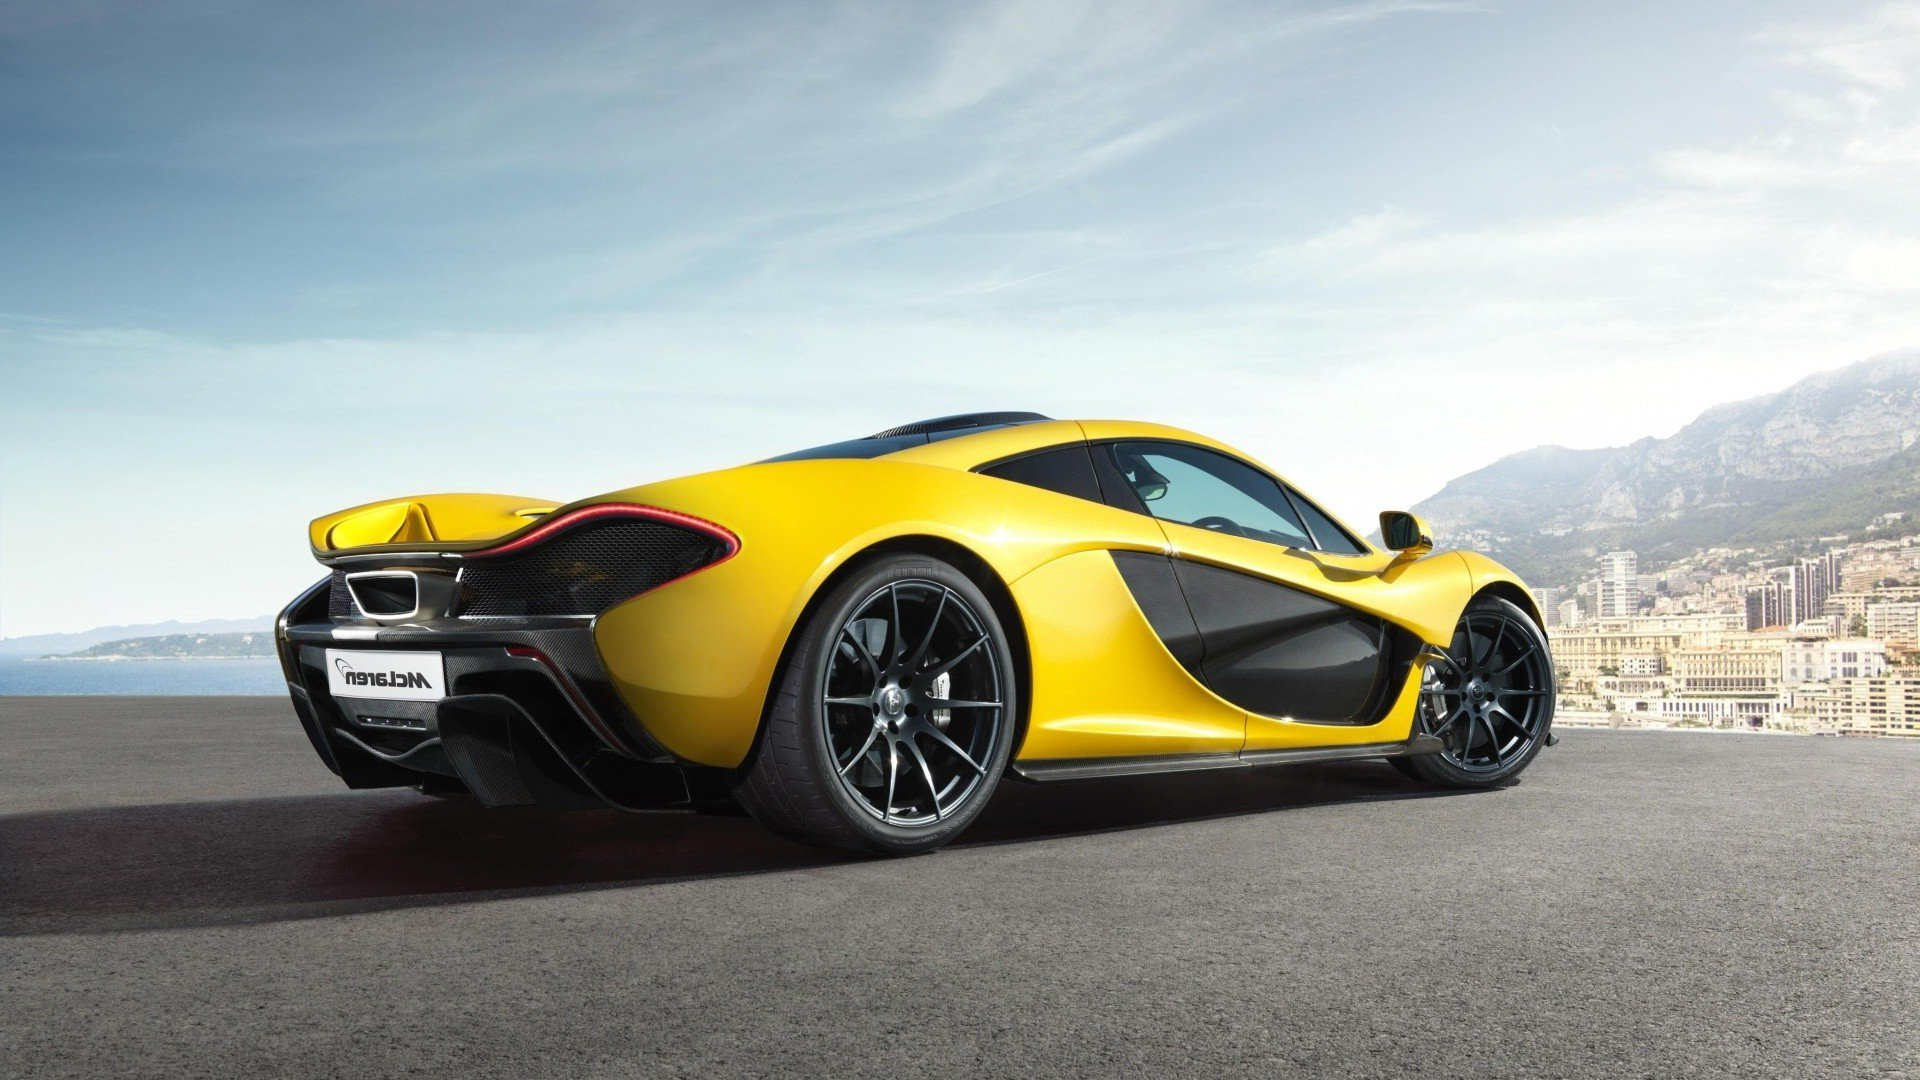 Mclaren p1 new hd cars 4k wallpapers images - Wallpaper hd 4k car ...